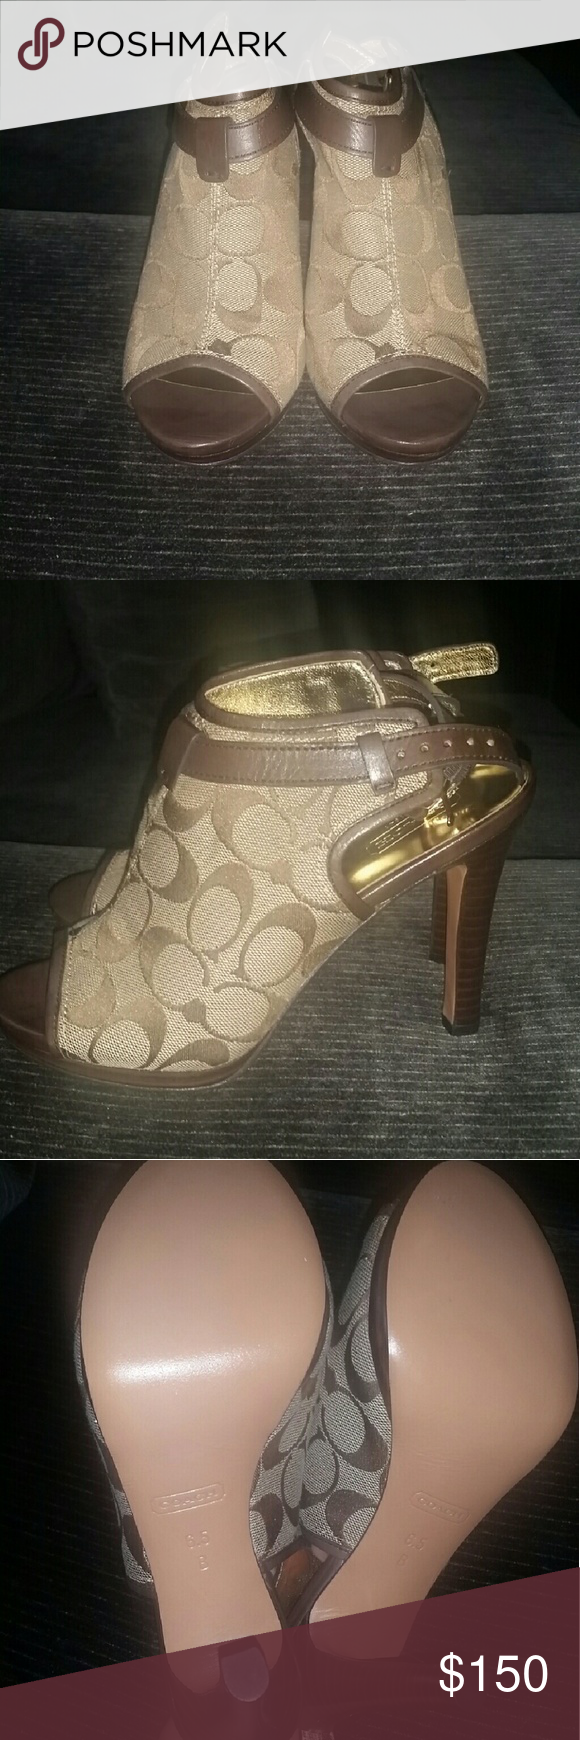 Coach Logo Peep Toe Booties Gorgeous bootie heels from Coach. They have the signature logo, peep toe front, and slingback. These shoes have never been worn. They are brand new without the box and without tags. Coach Shoes Heels